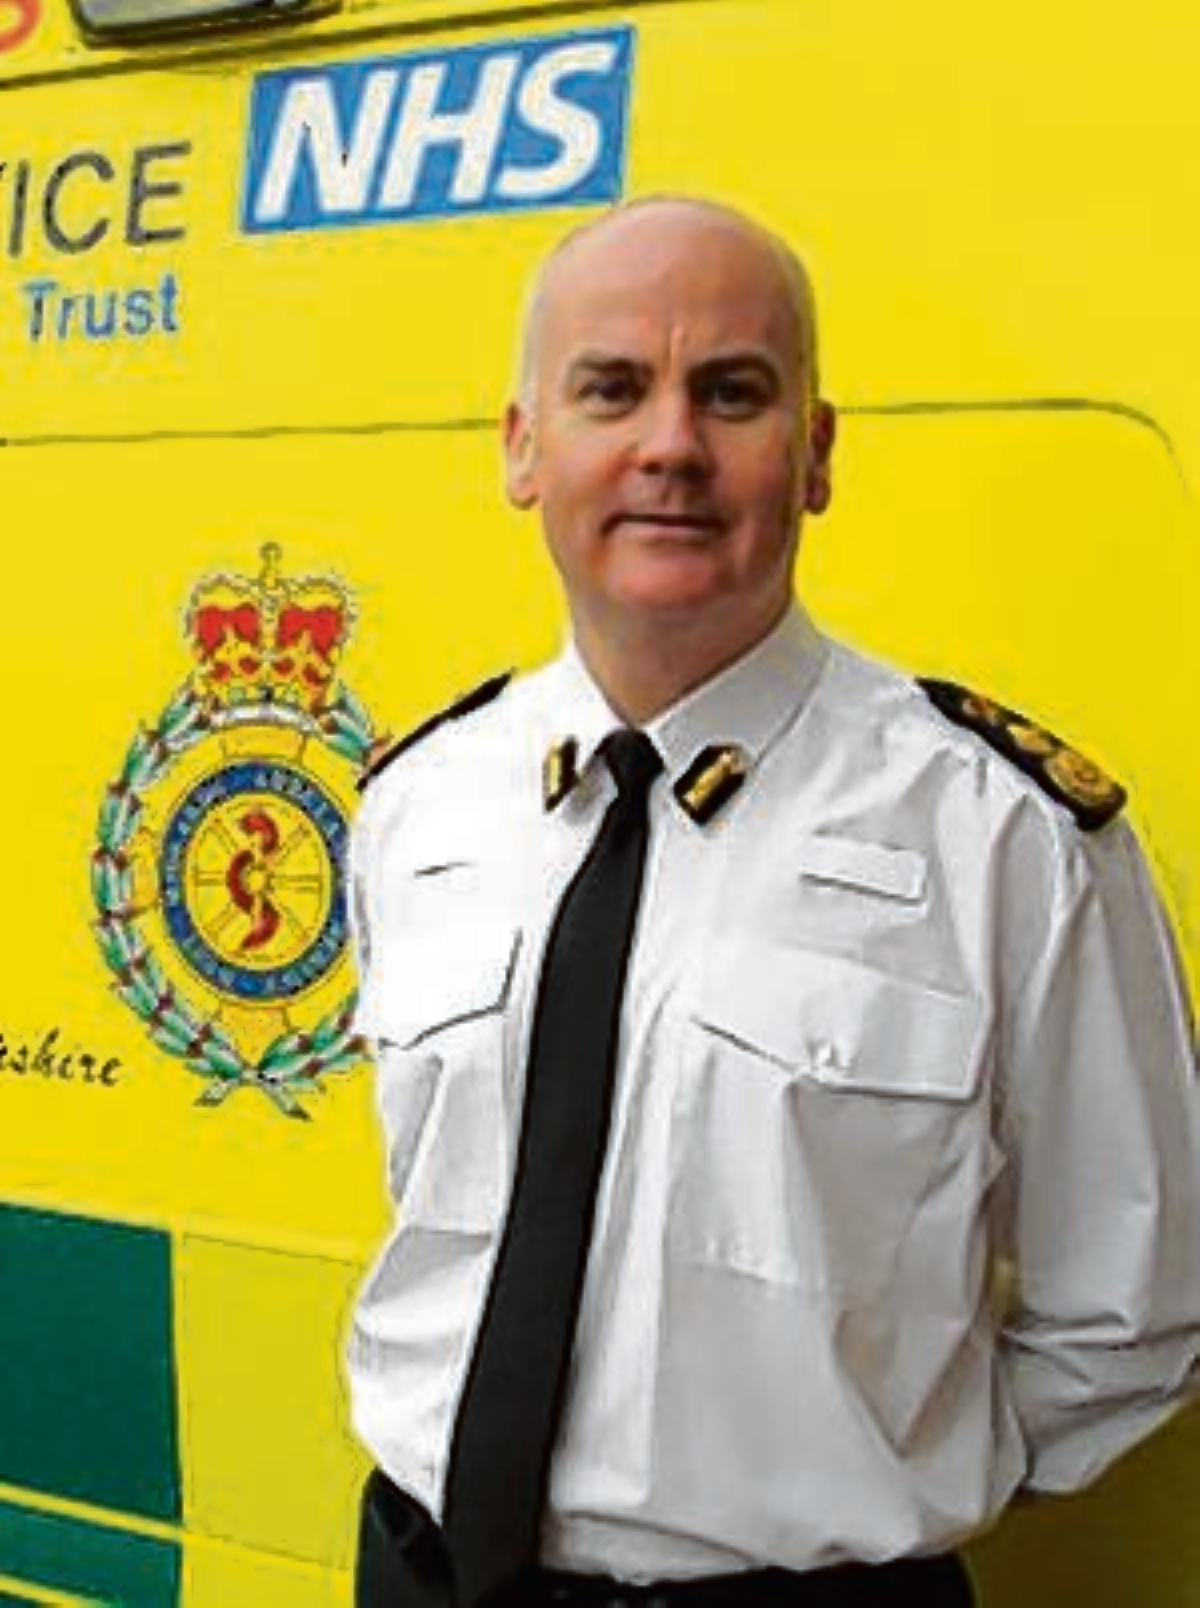 Ambulance boss' £232,000 annual salary defended as value for money